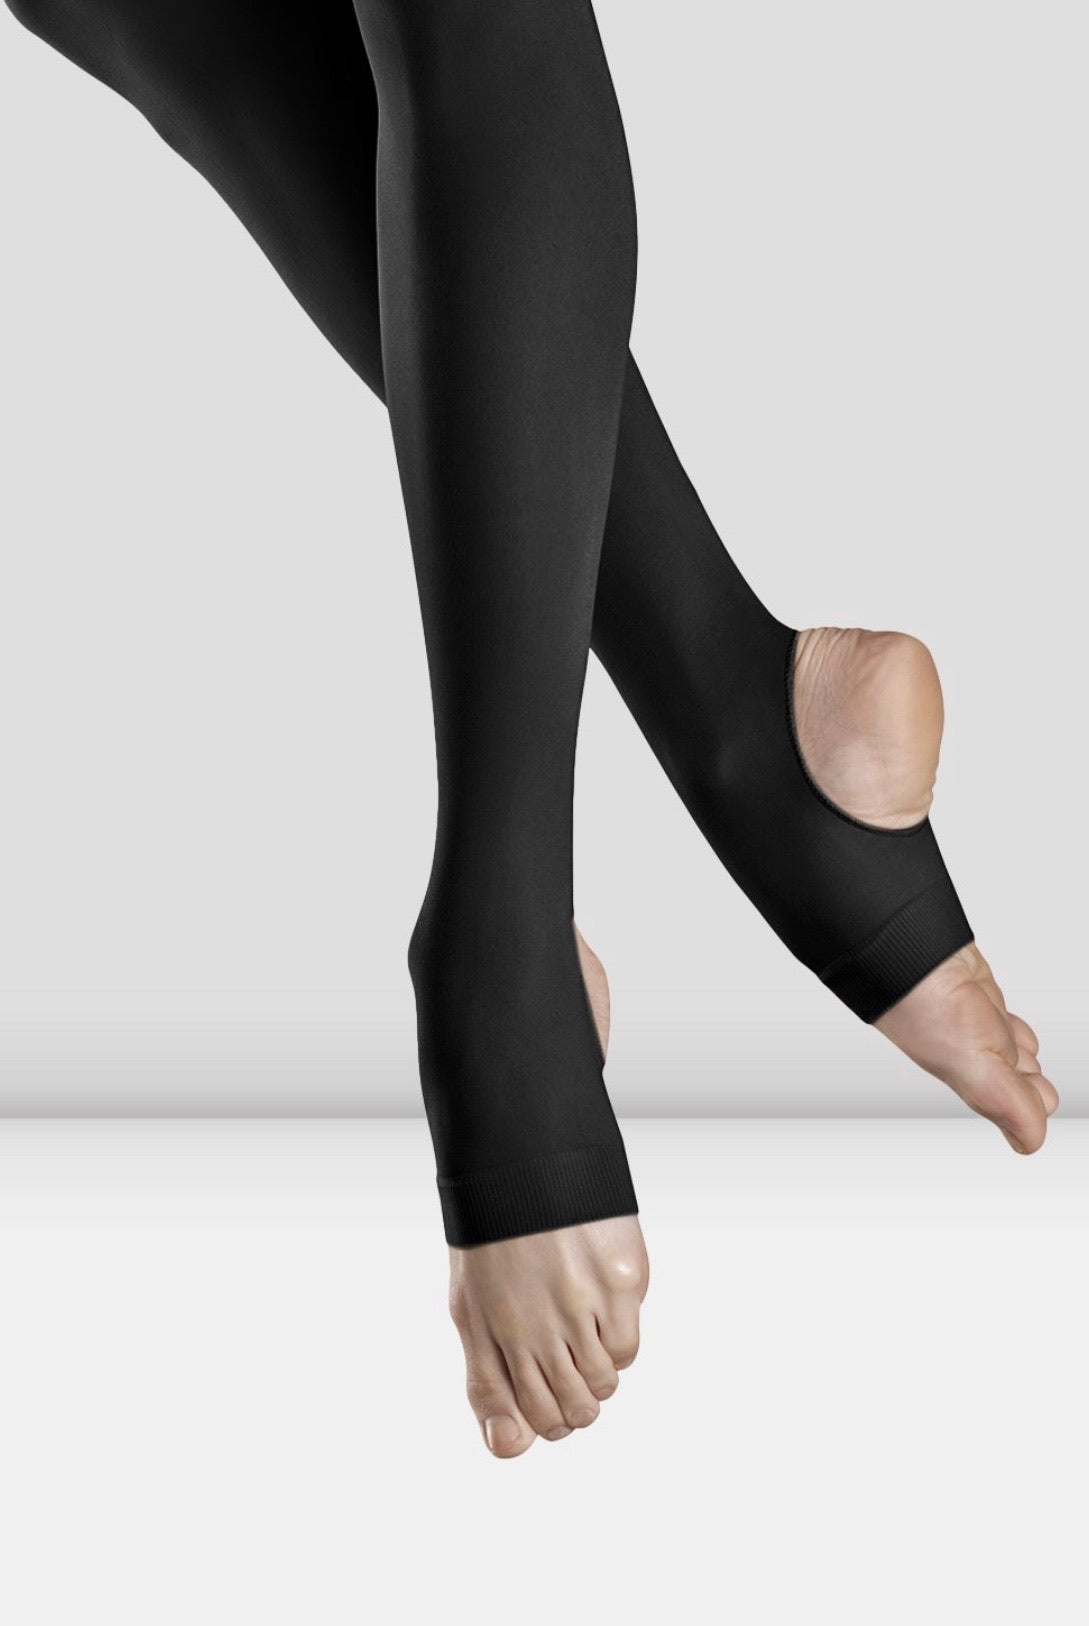 Bloch Endura Stirrup Tights - Child